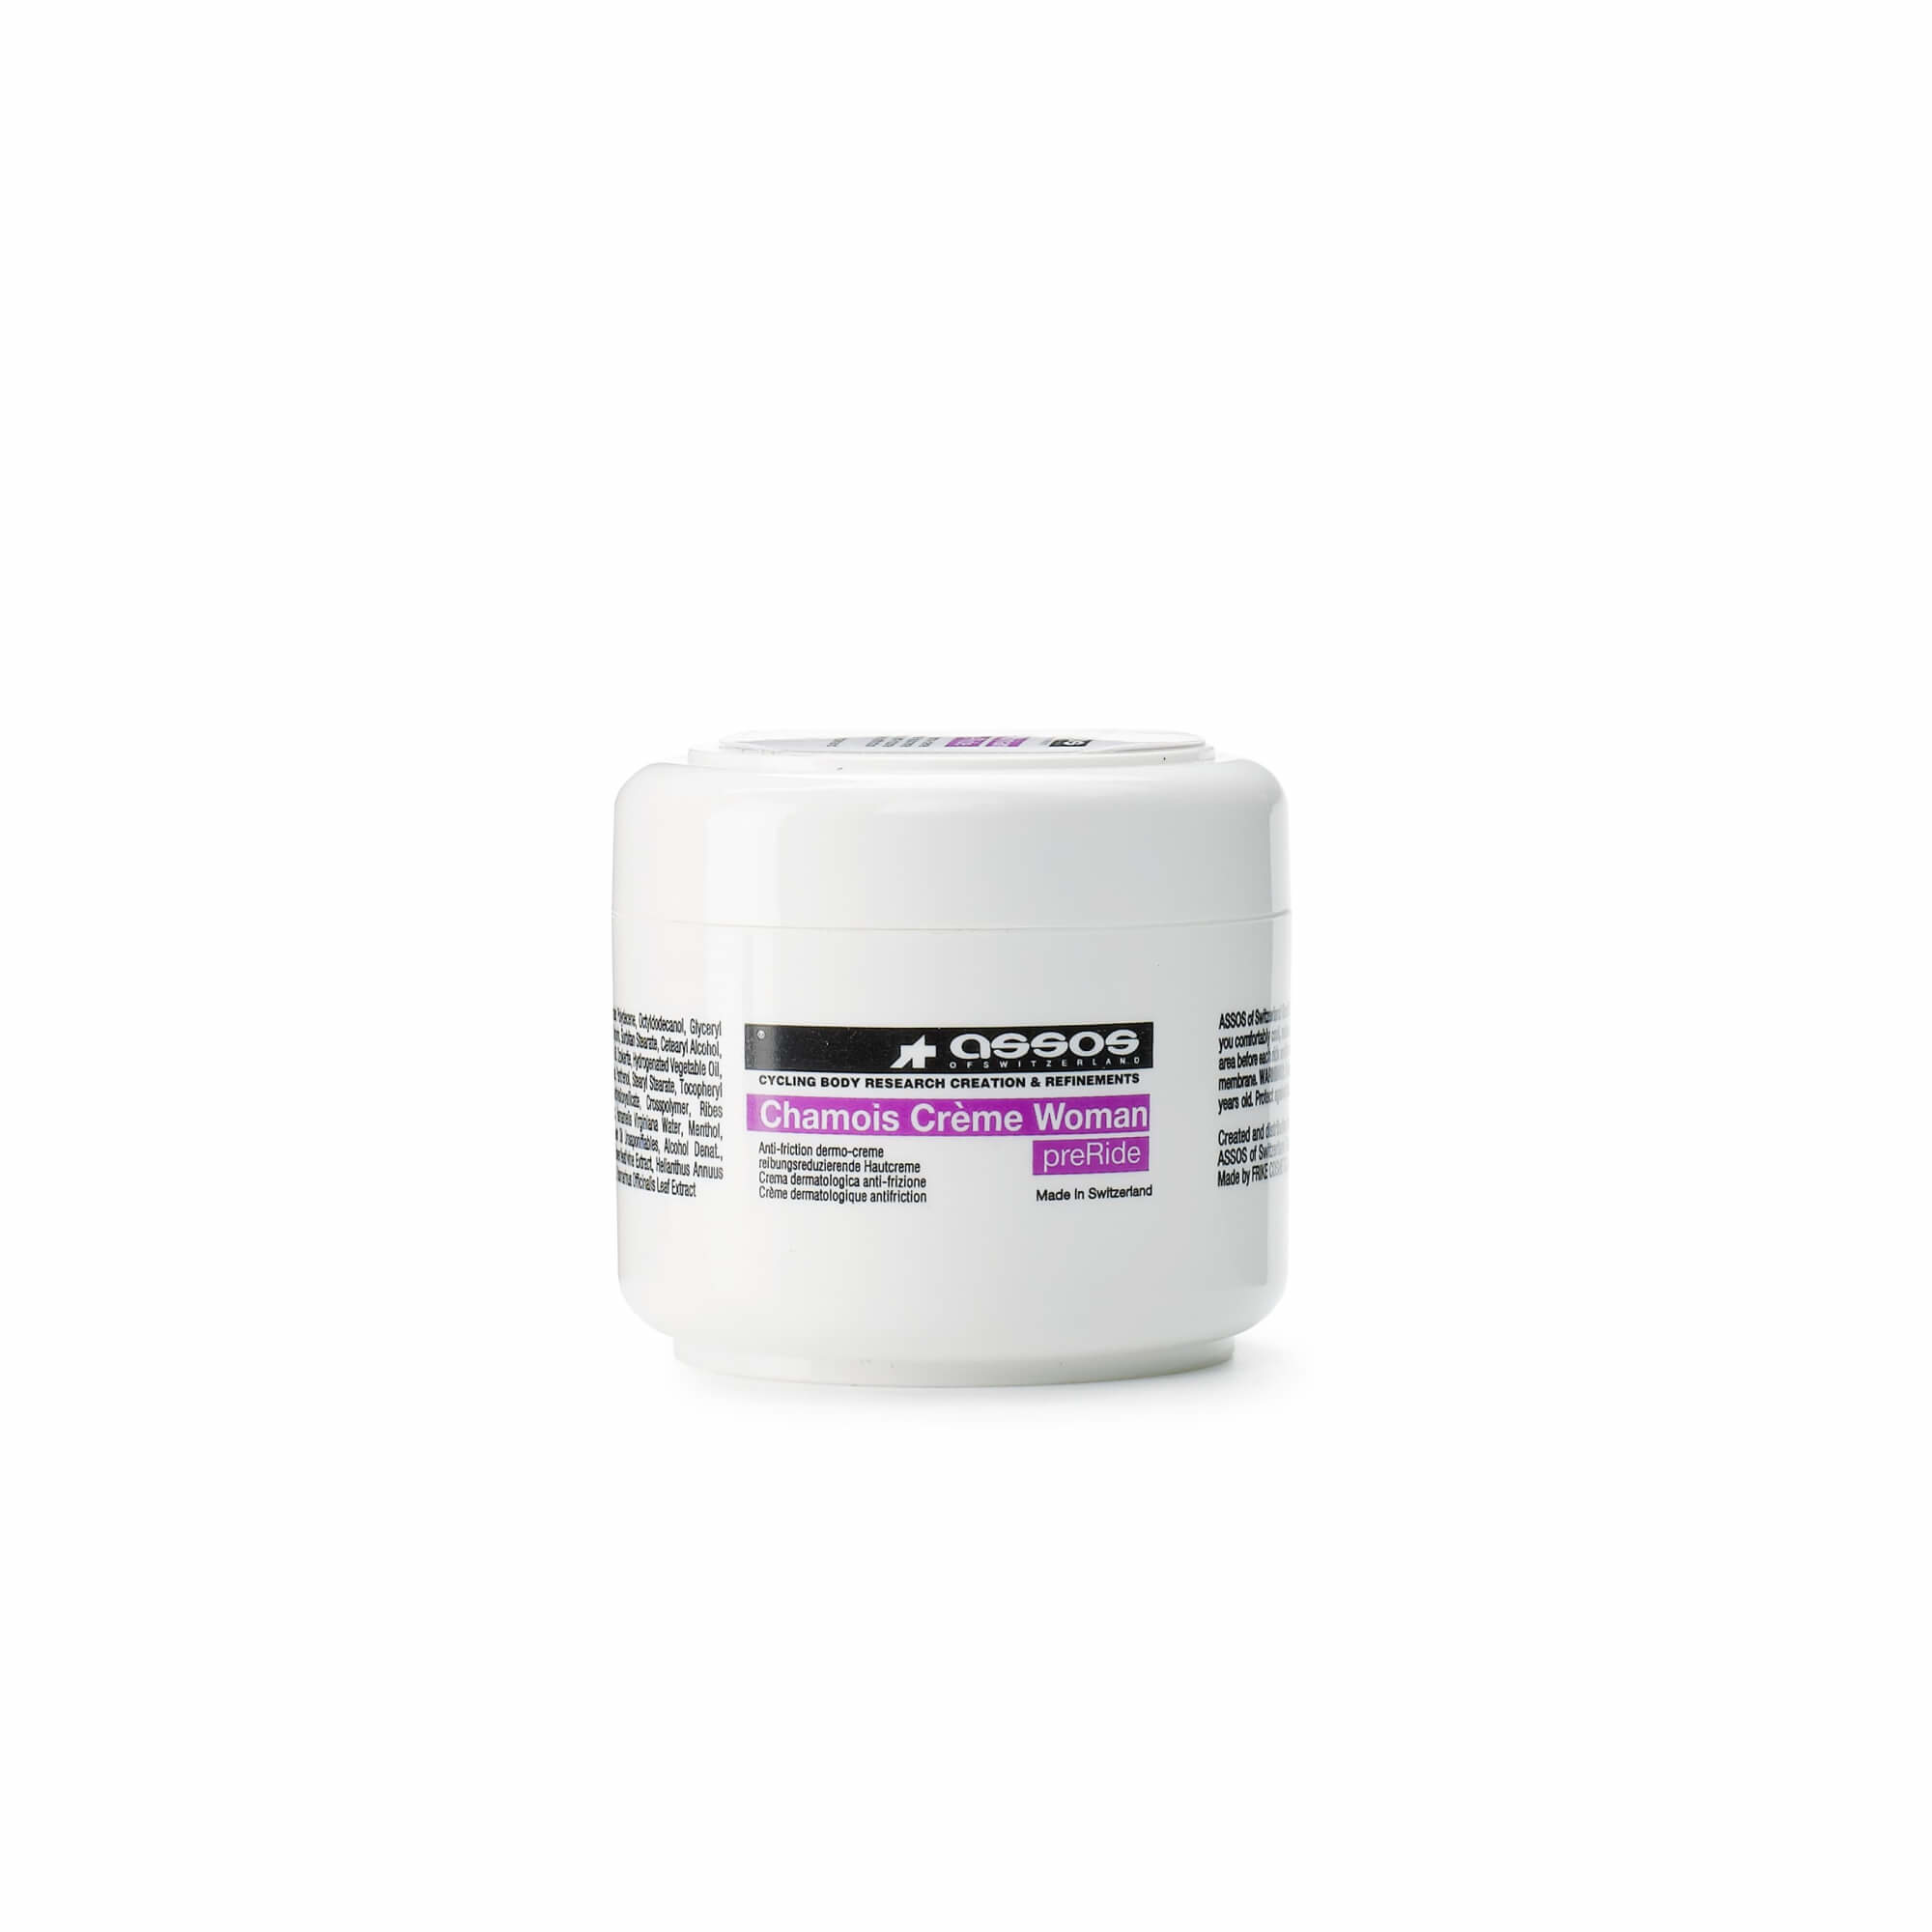 Chamois Creme Women Single Unit 75 ml-1